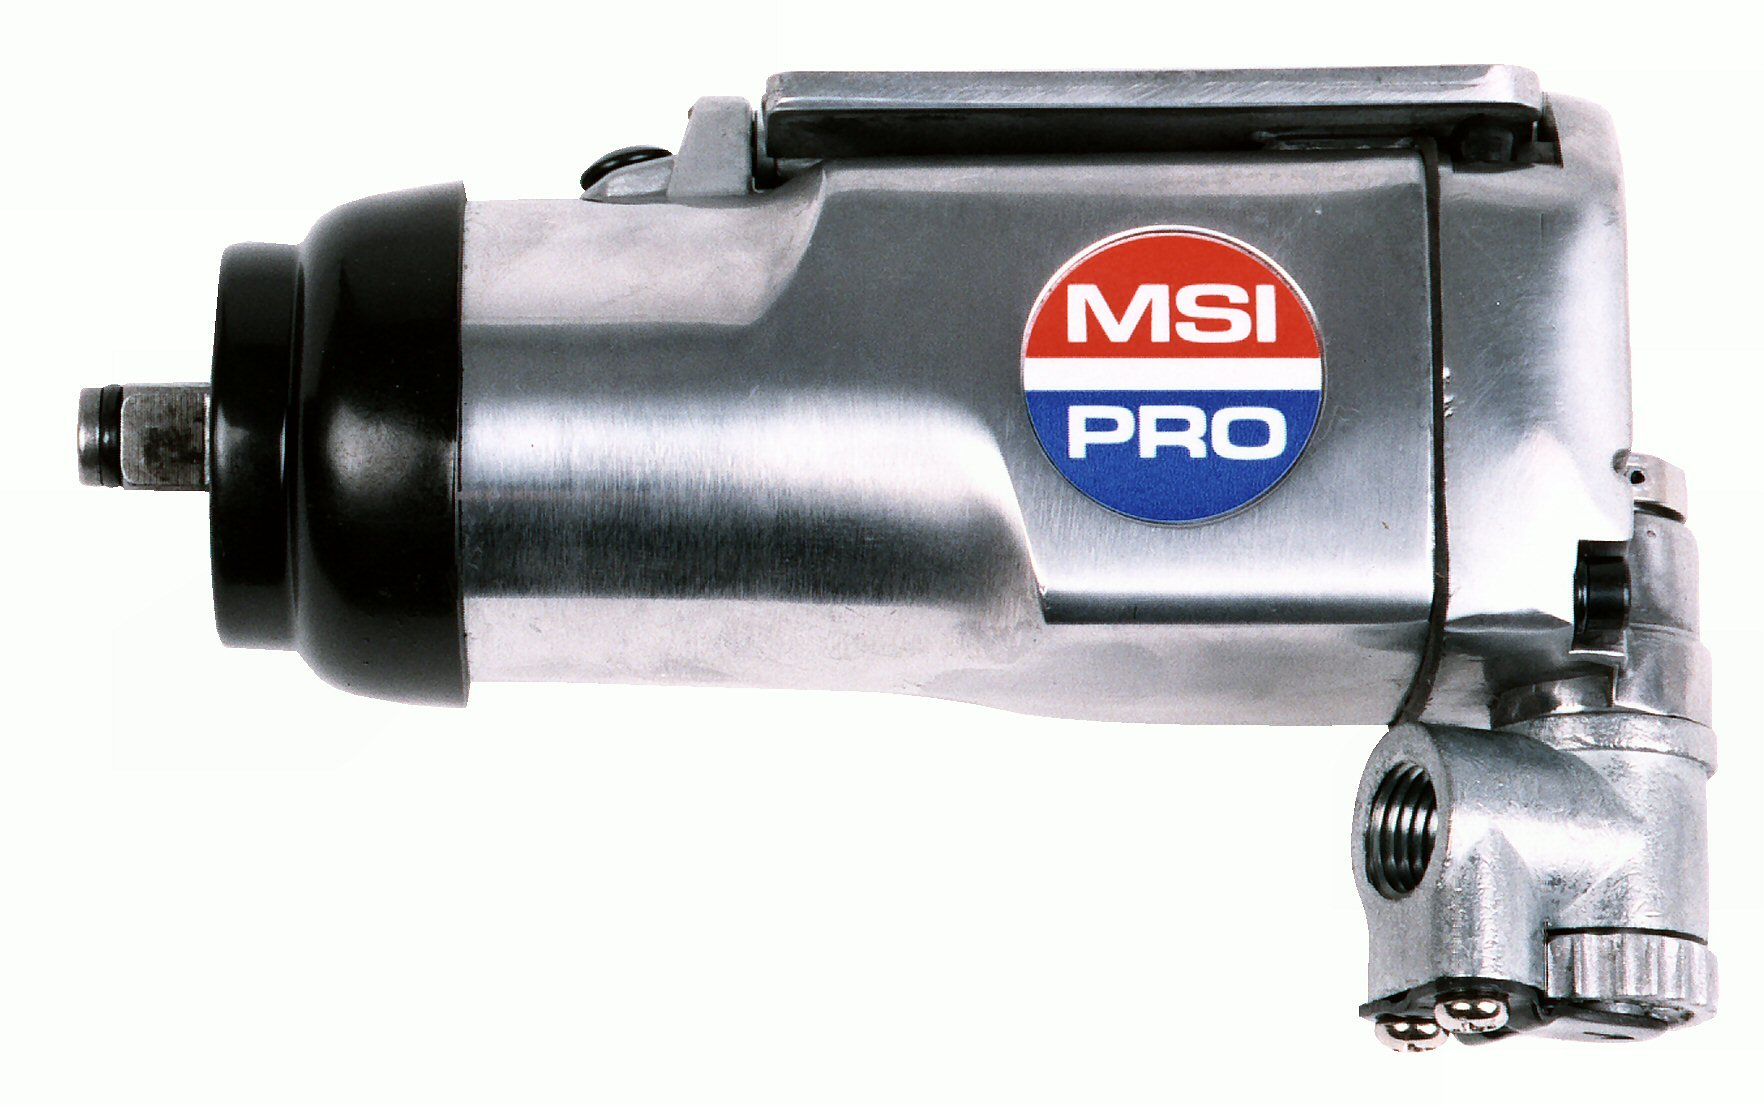 Air Power Impact Wrench - MSI PRO 3/8-inch Single Hammer Butterfly Impact Wrench - 75ft/lb Torque, 10,000rpm, 5.5''L